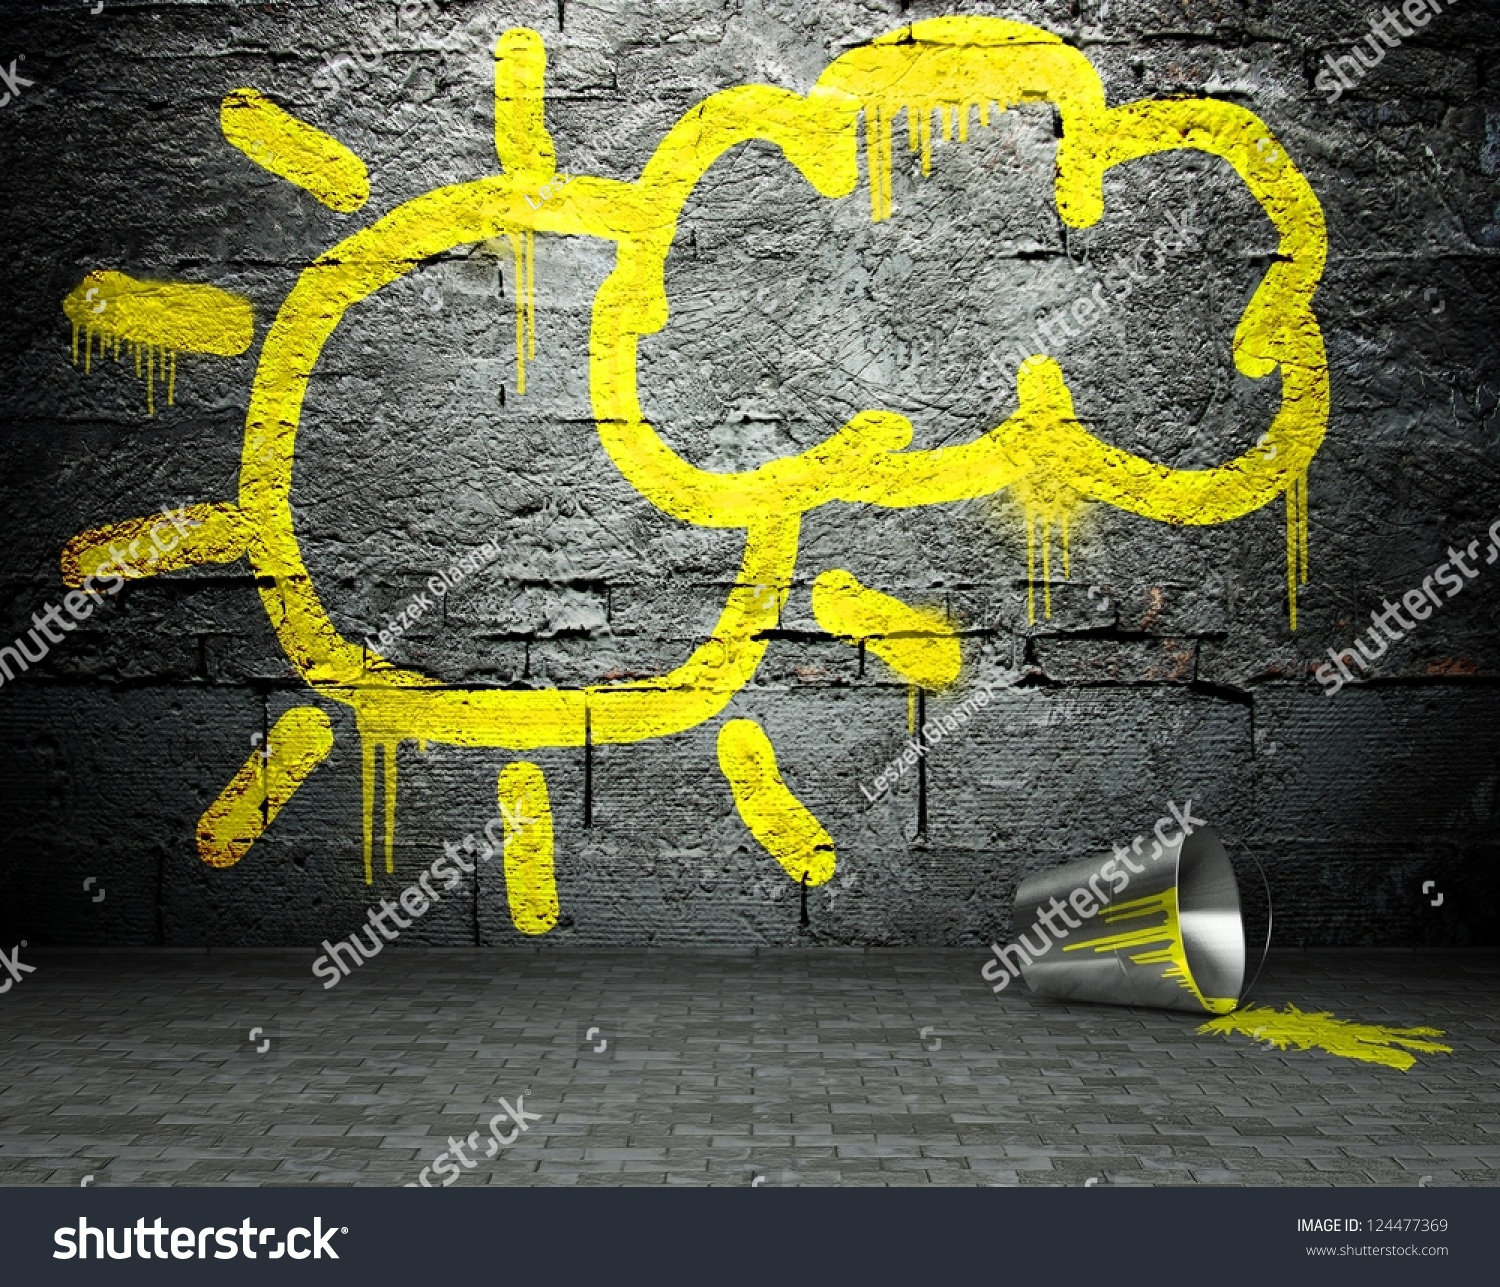 Royalty Free Stock Illustration of Graffiti Wall Sun Cloud Sign ...